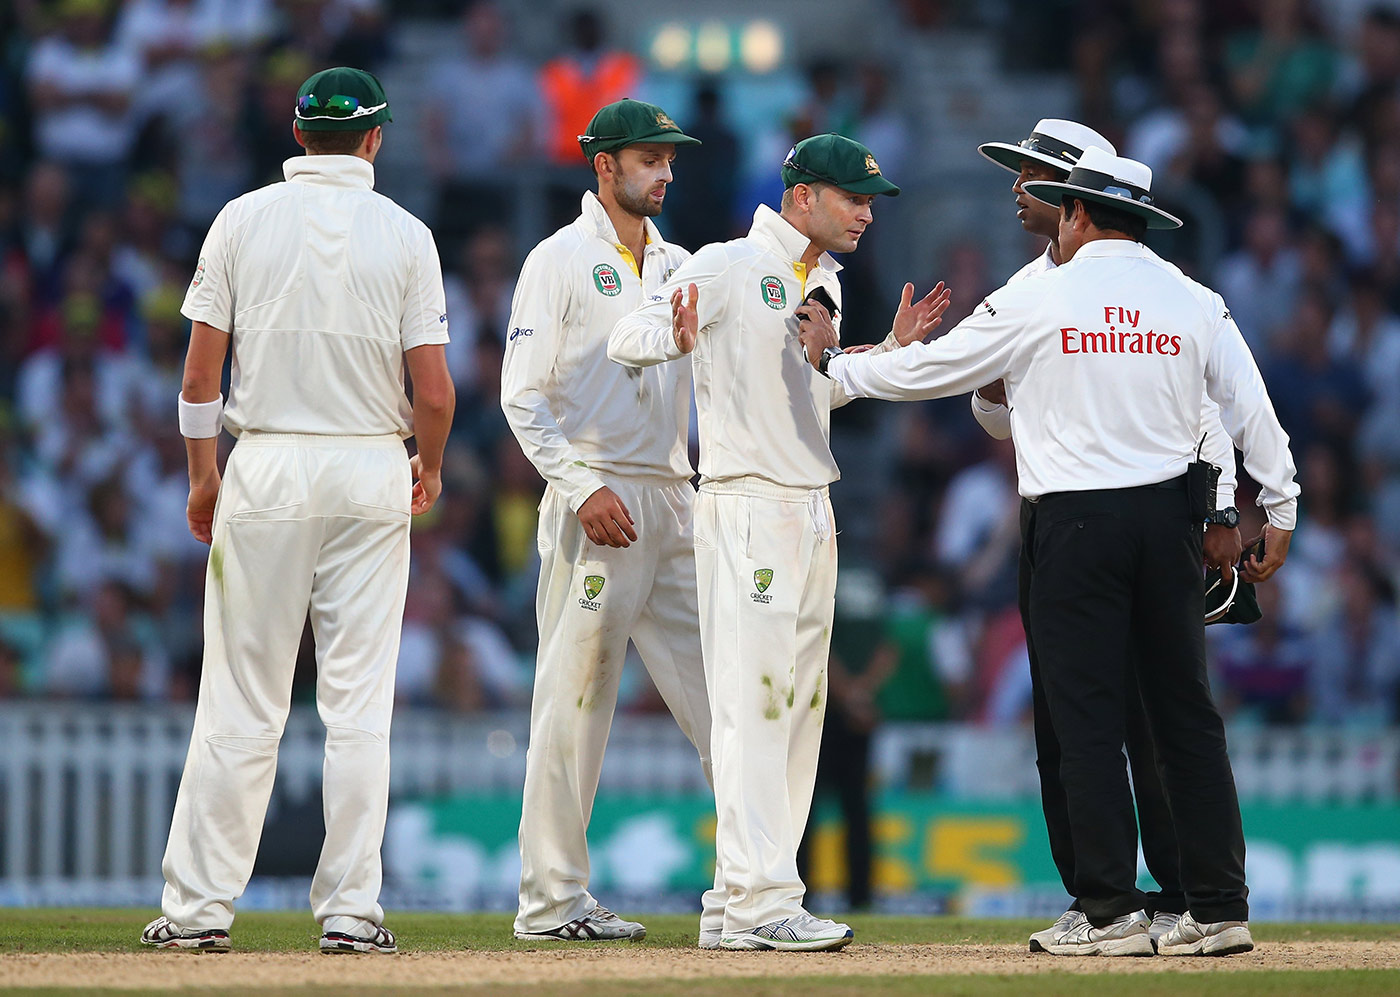 Michael Clarke in an animated discussion with the umpires